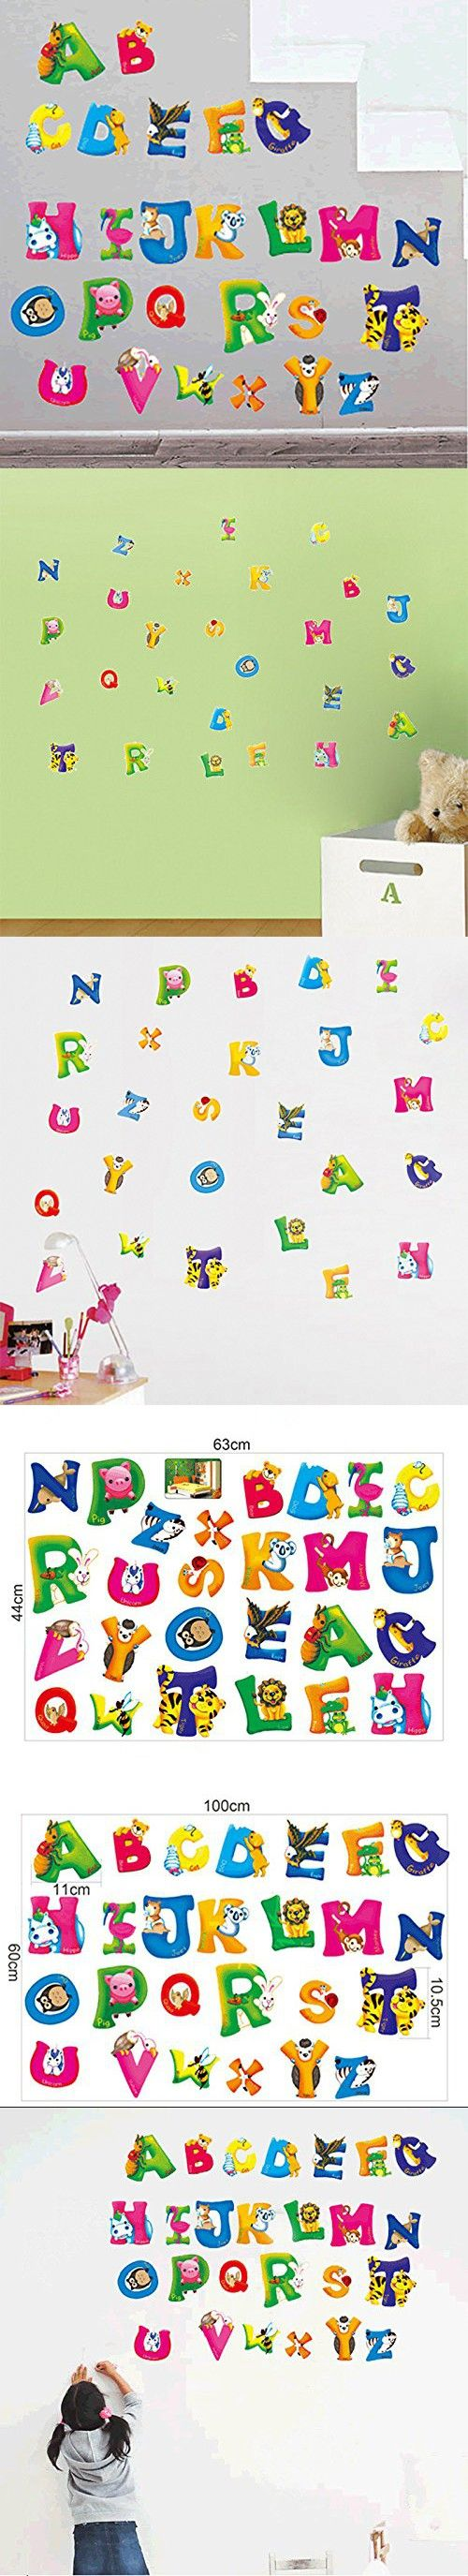 Alrens_DIY(TM)Fun Early Childhood Education English Alphabets Letters Stickers DIY Eco-friendly PVC Vinyl Bedroom Wall Sticker Removable Home Decoration Creative Art Décor Kids Nursery Room Kindergarten adesivo de parede Mural Living Room Decorative Decal